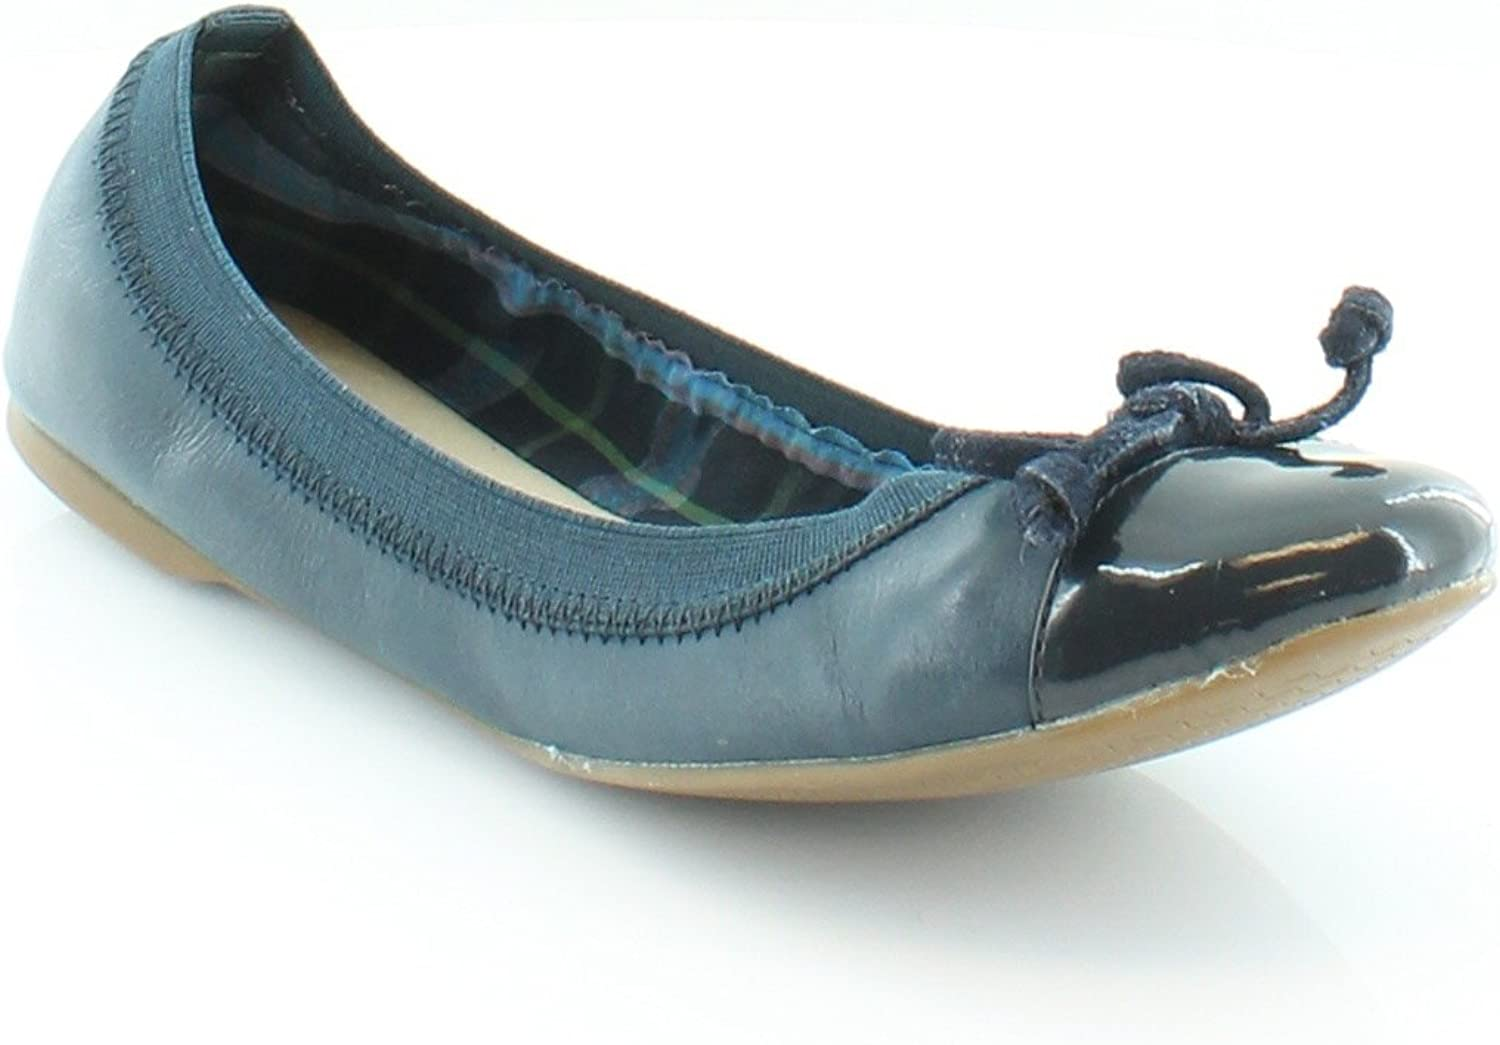 Leather Flats Navy 7.5 M